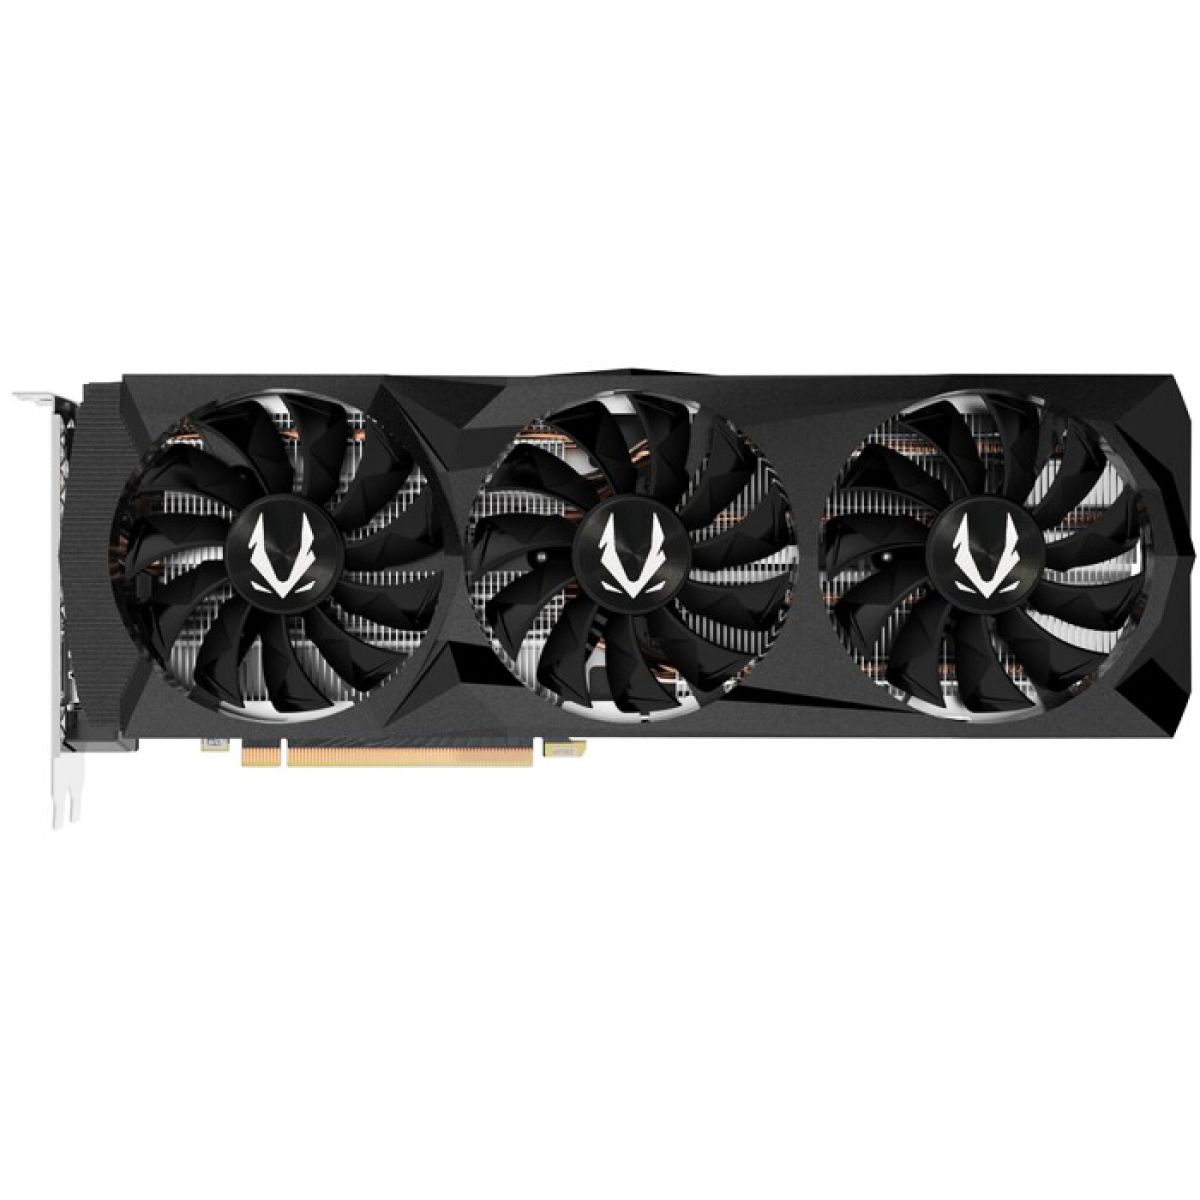 Placa de Vídeo Zotac GeForce RTX 2080 AMP, 8GB GDDR6, 256Bit, ZT-T20800D-10P